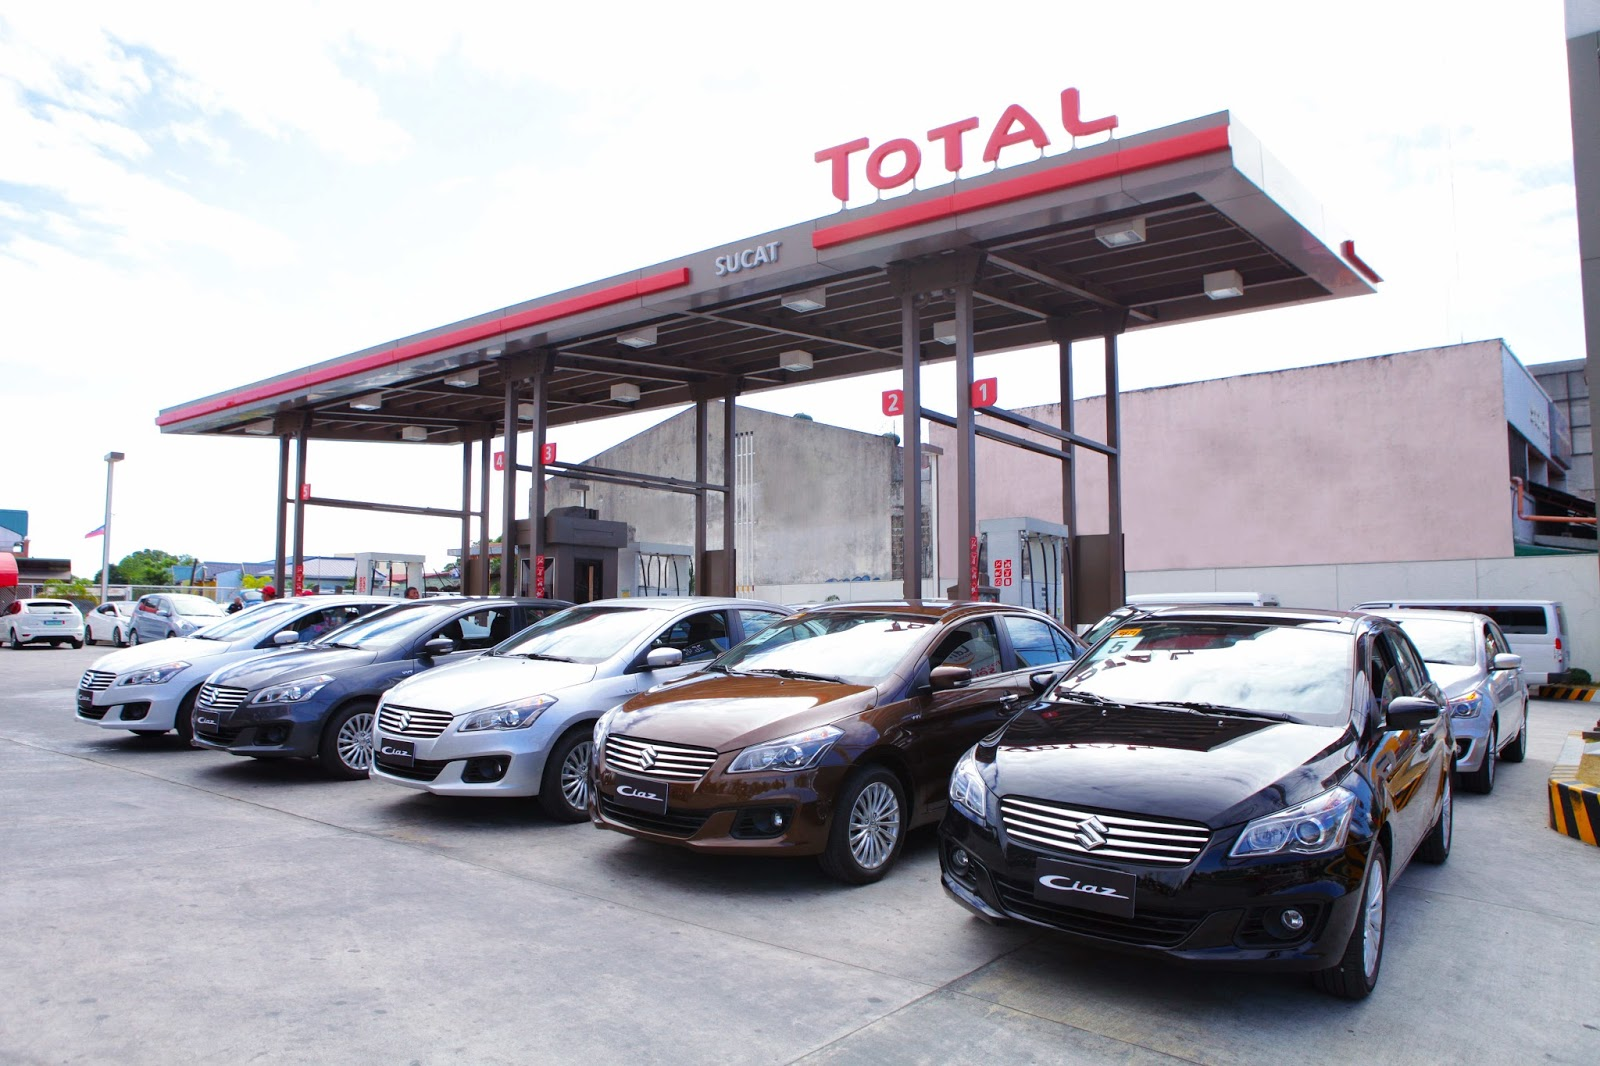 Suzuki Philippines partners with TOTAL